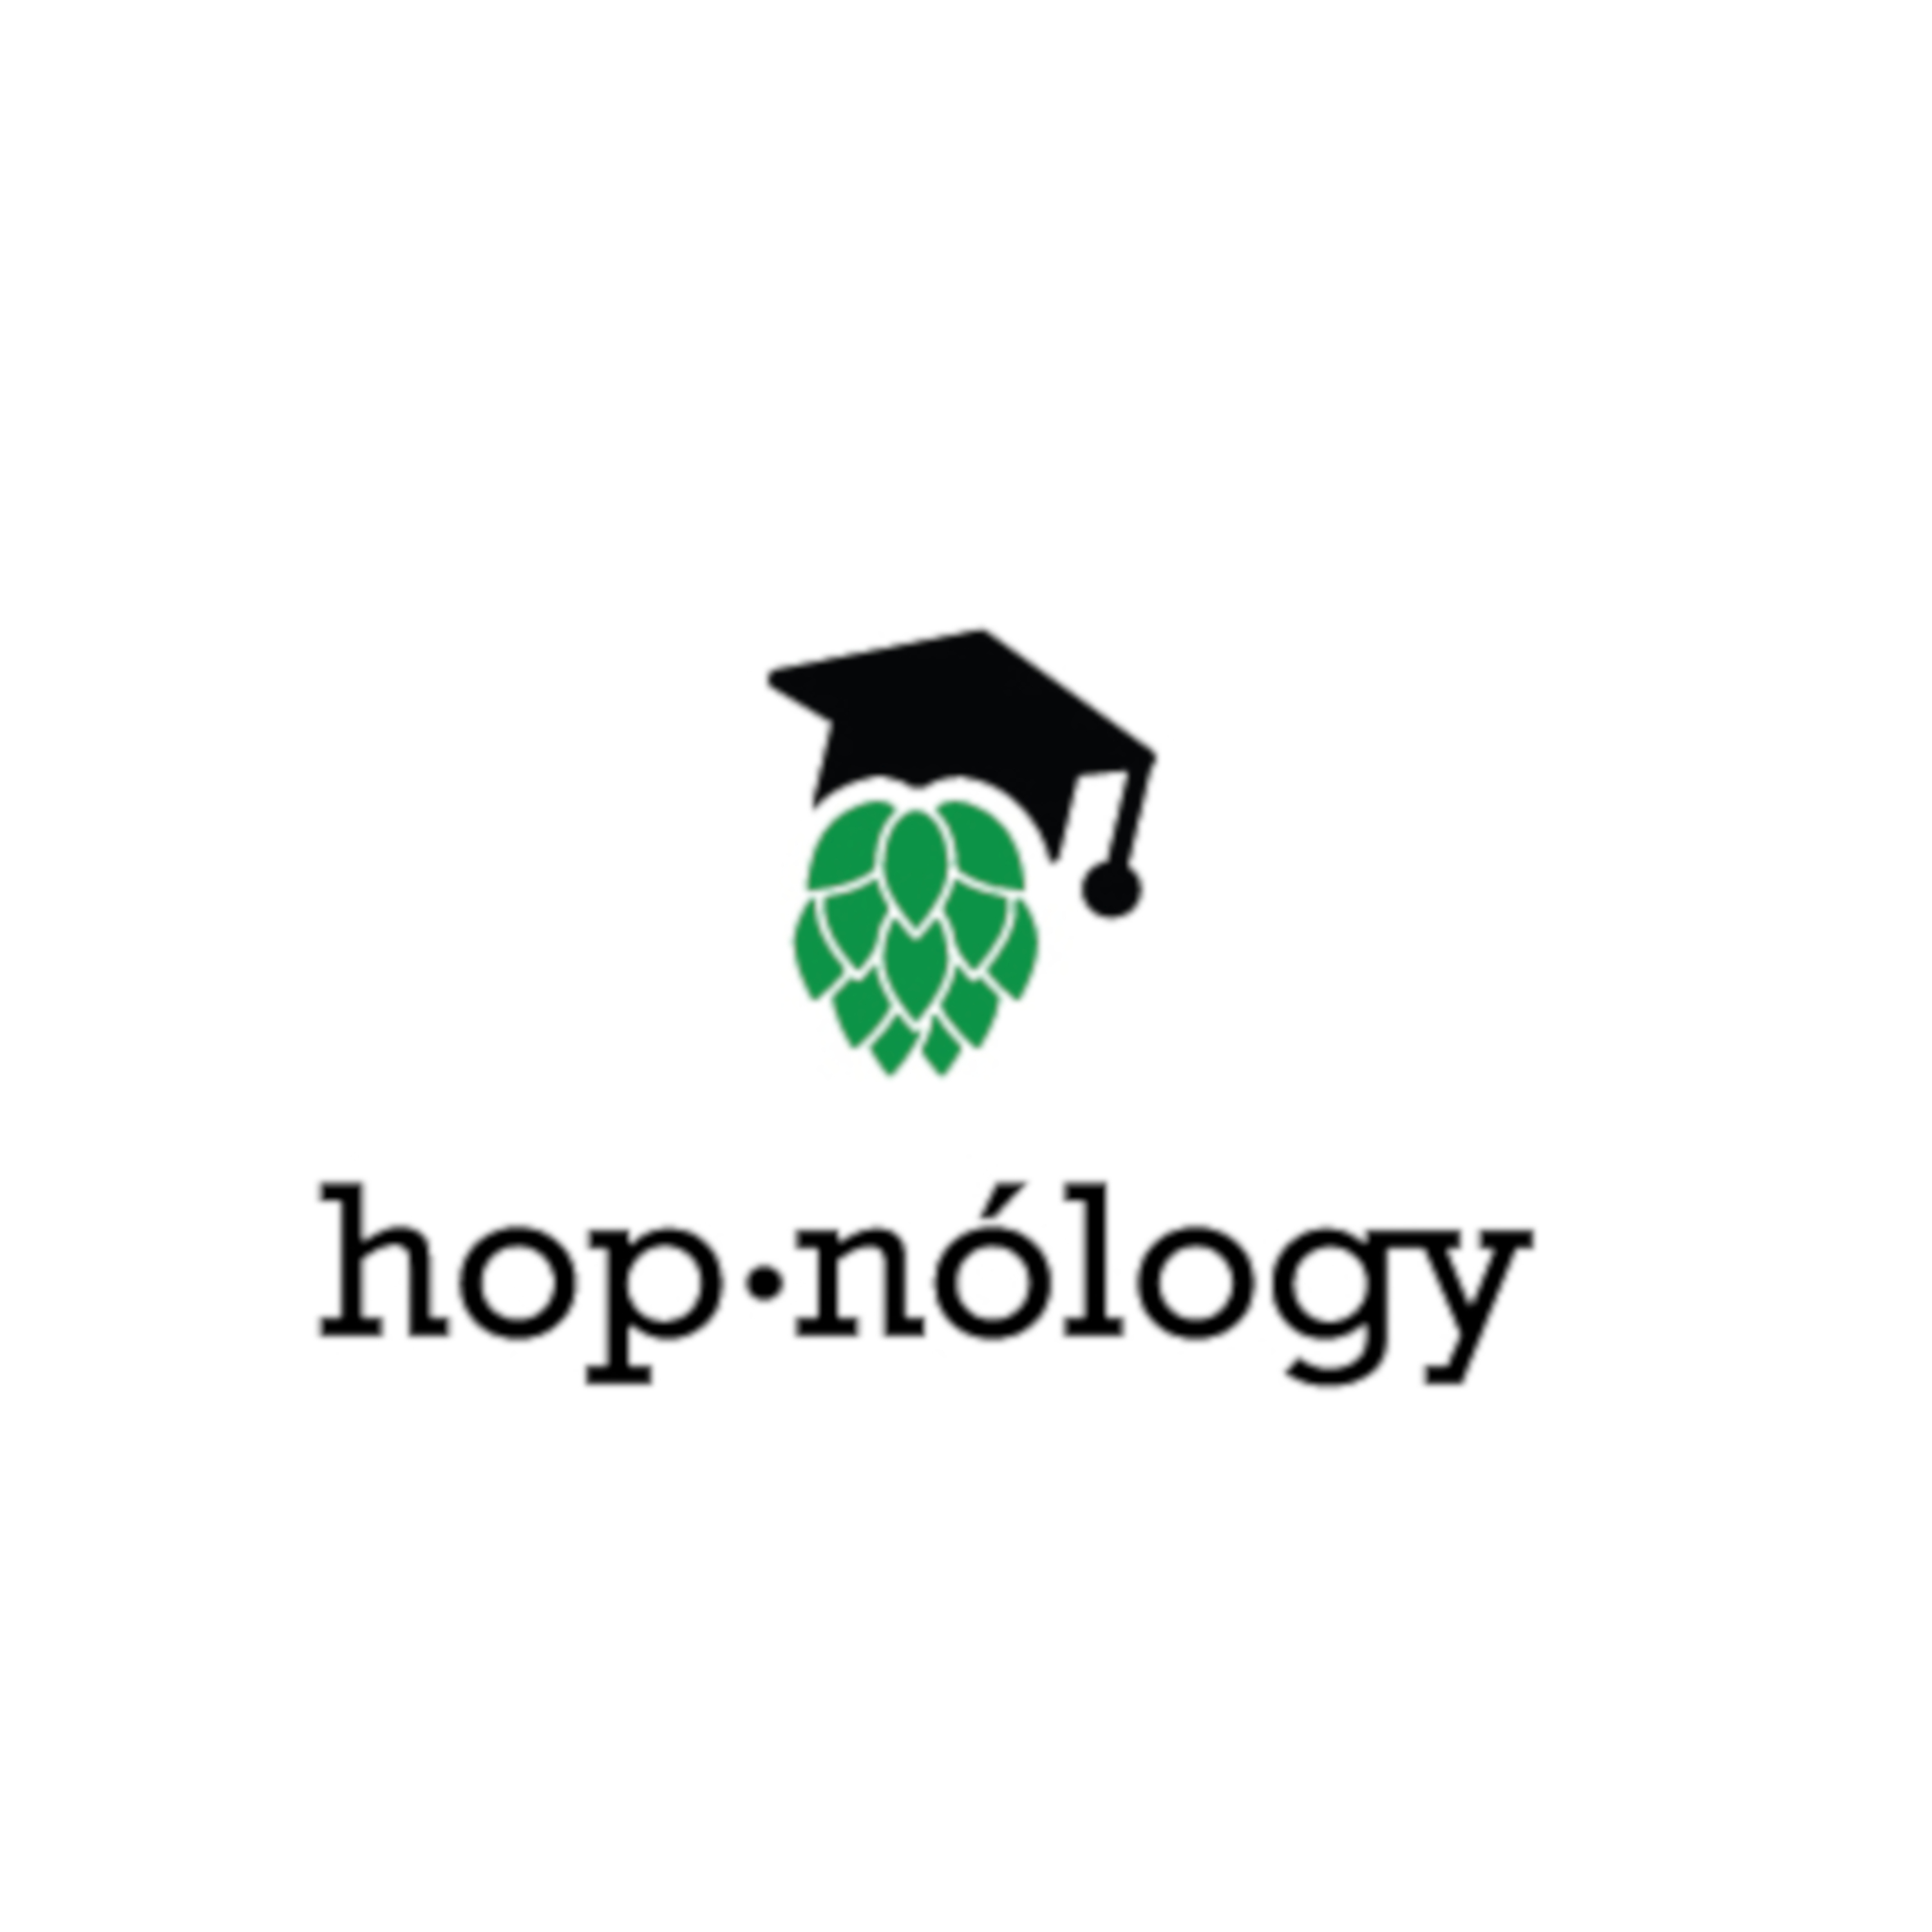 hopnology: Hop Growing and Brewing for Craft Beer